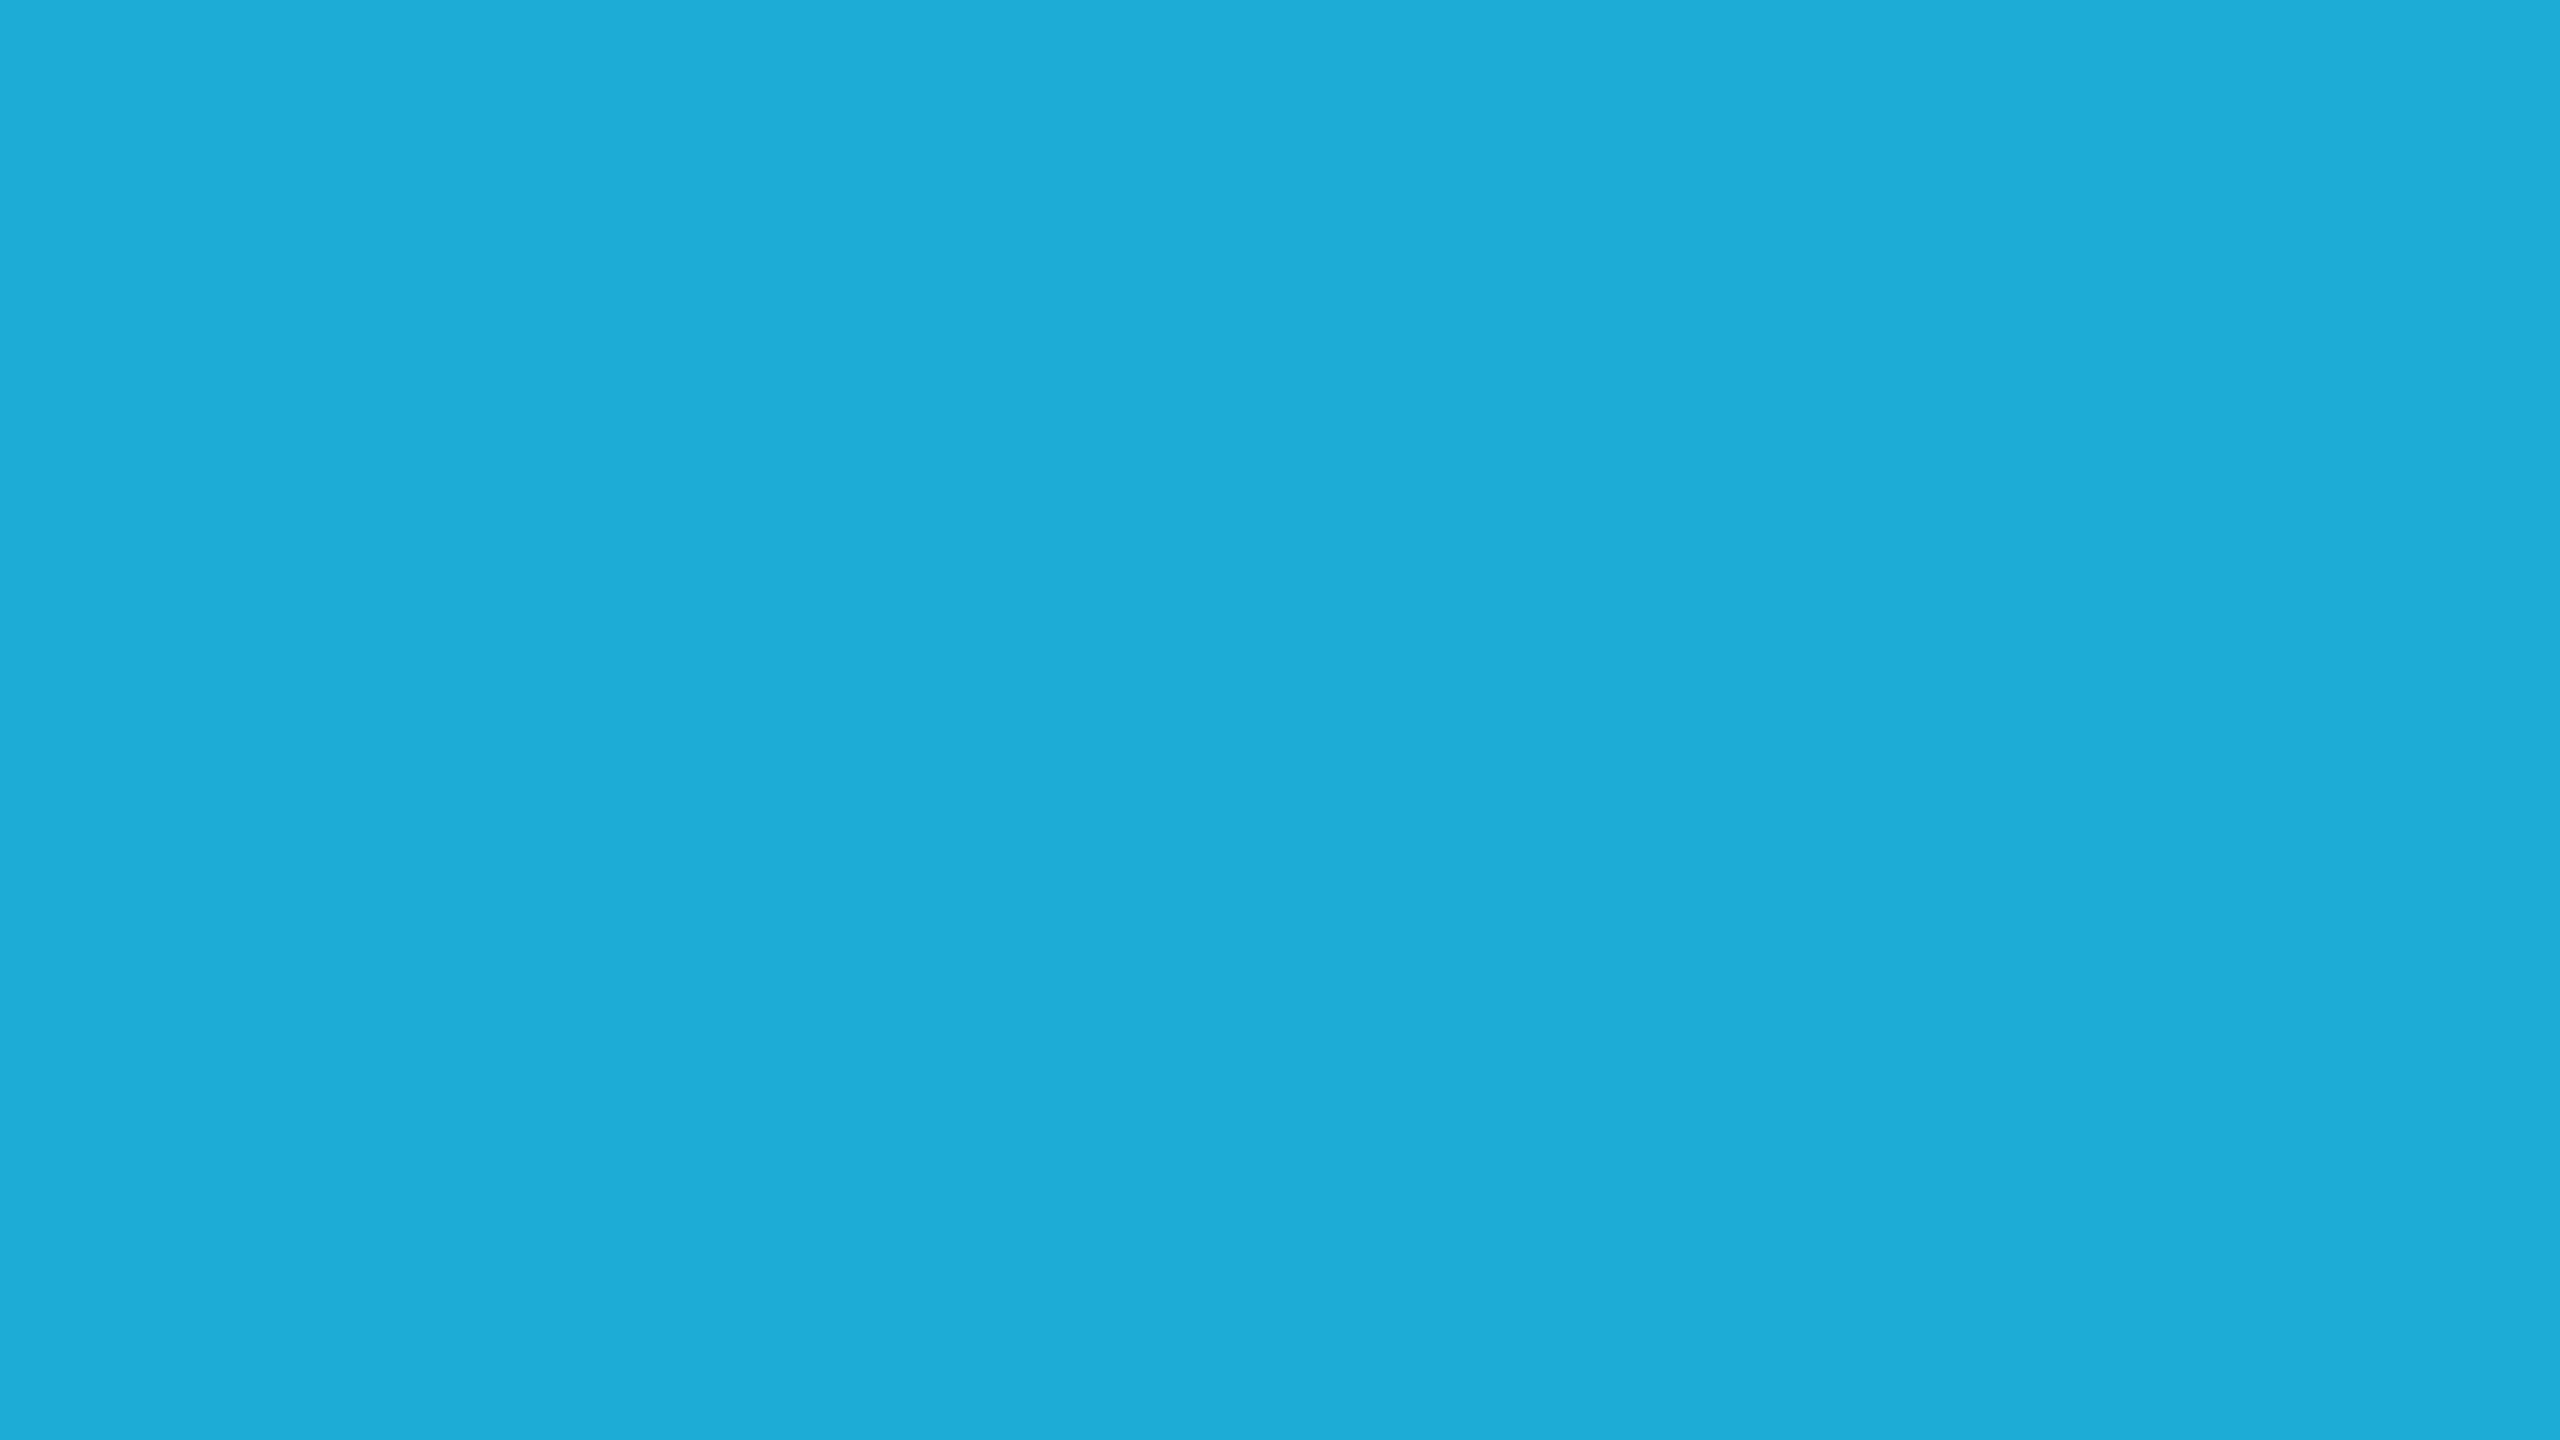 Sky Hd Wallpaper 2560x1440 Bright Cerulean Solid Color Background